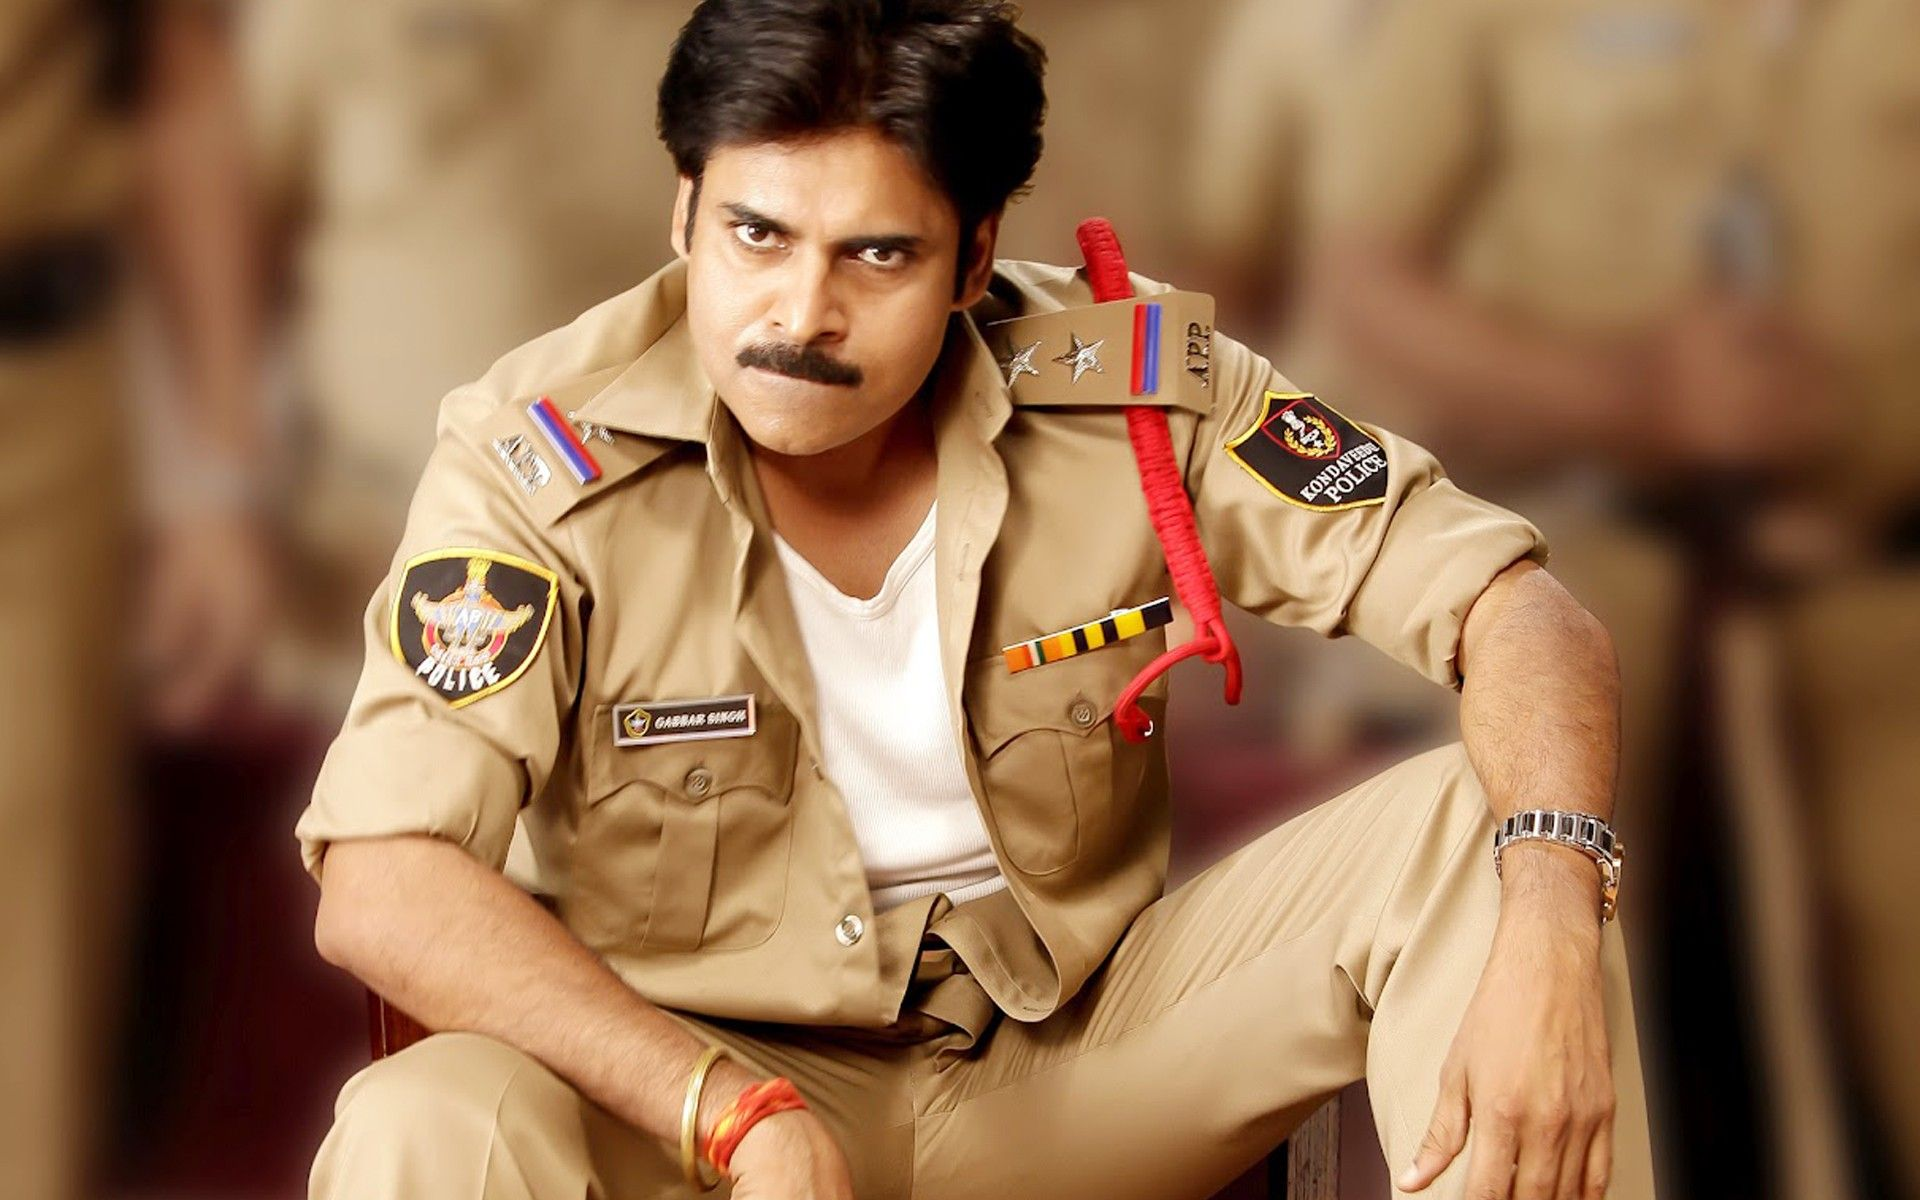 Pavan Kalyan Background by Cody Barnwill on